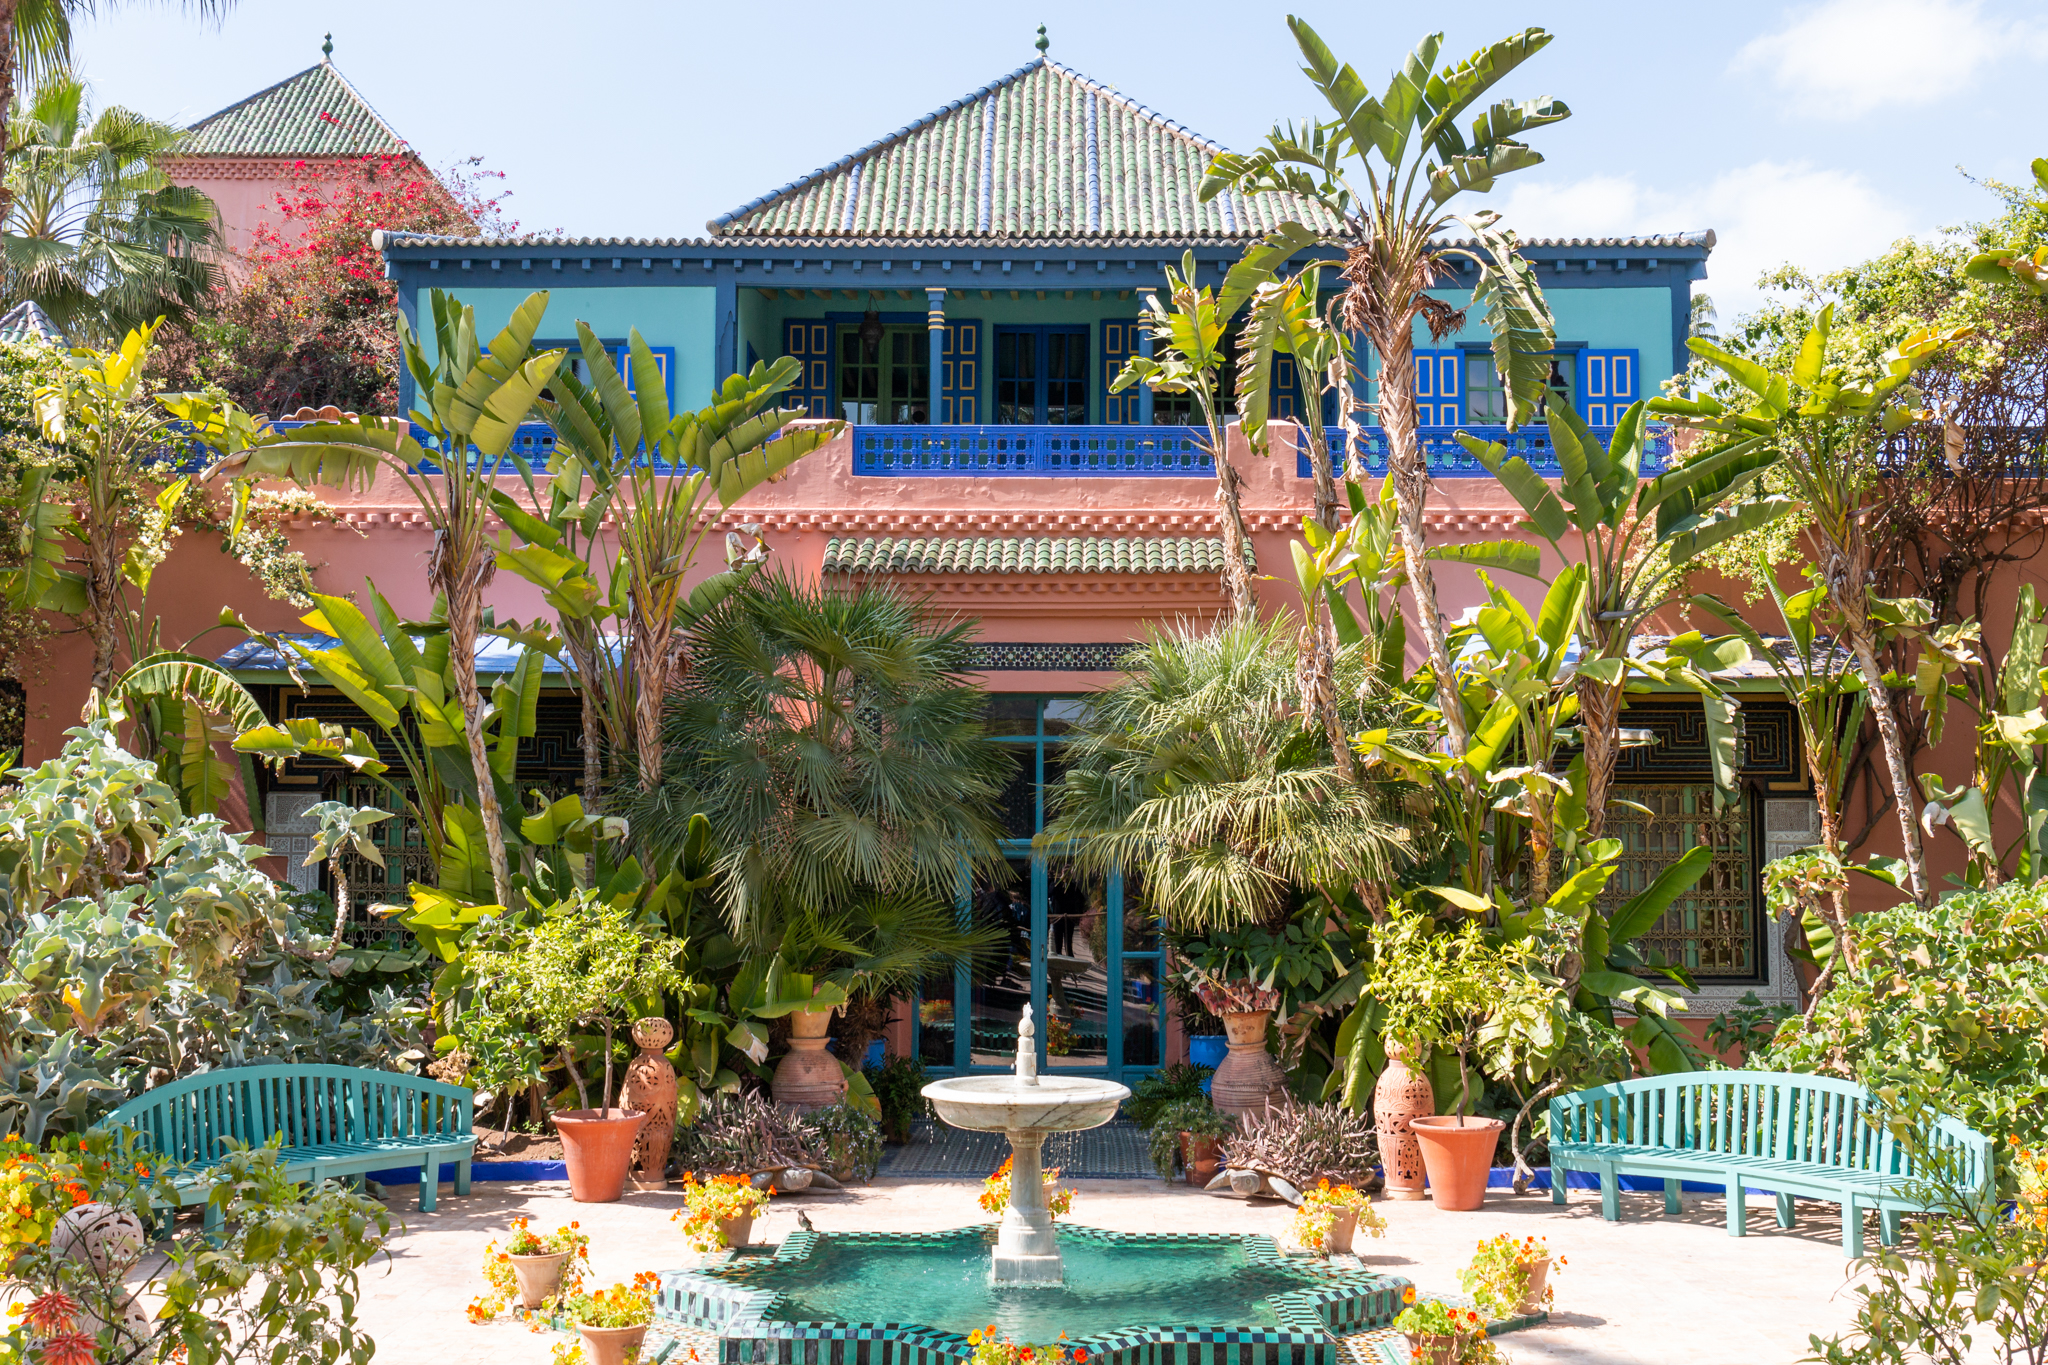 Yves Saint Laurent Museum and Jardin Majorelle | Marrakech, Morocco | Ciao Fabello